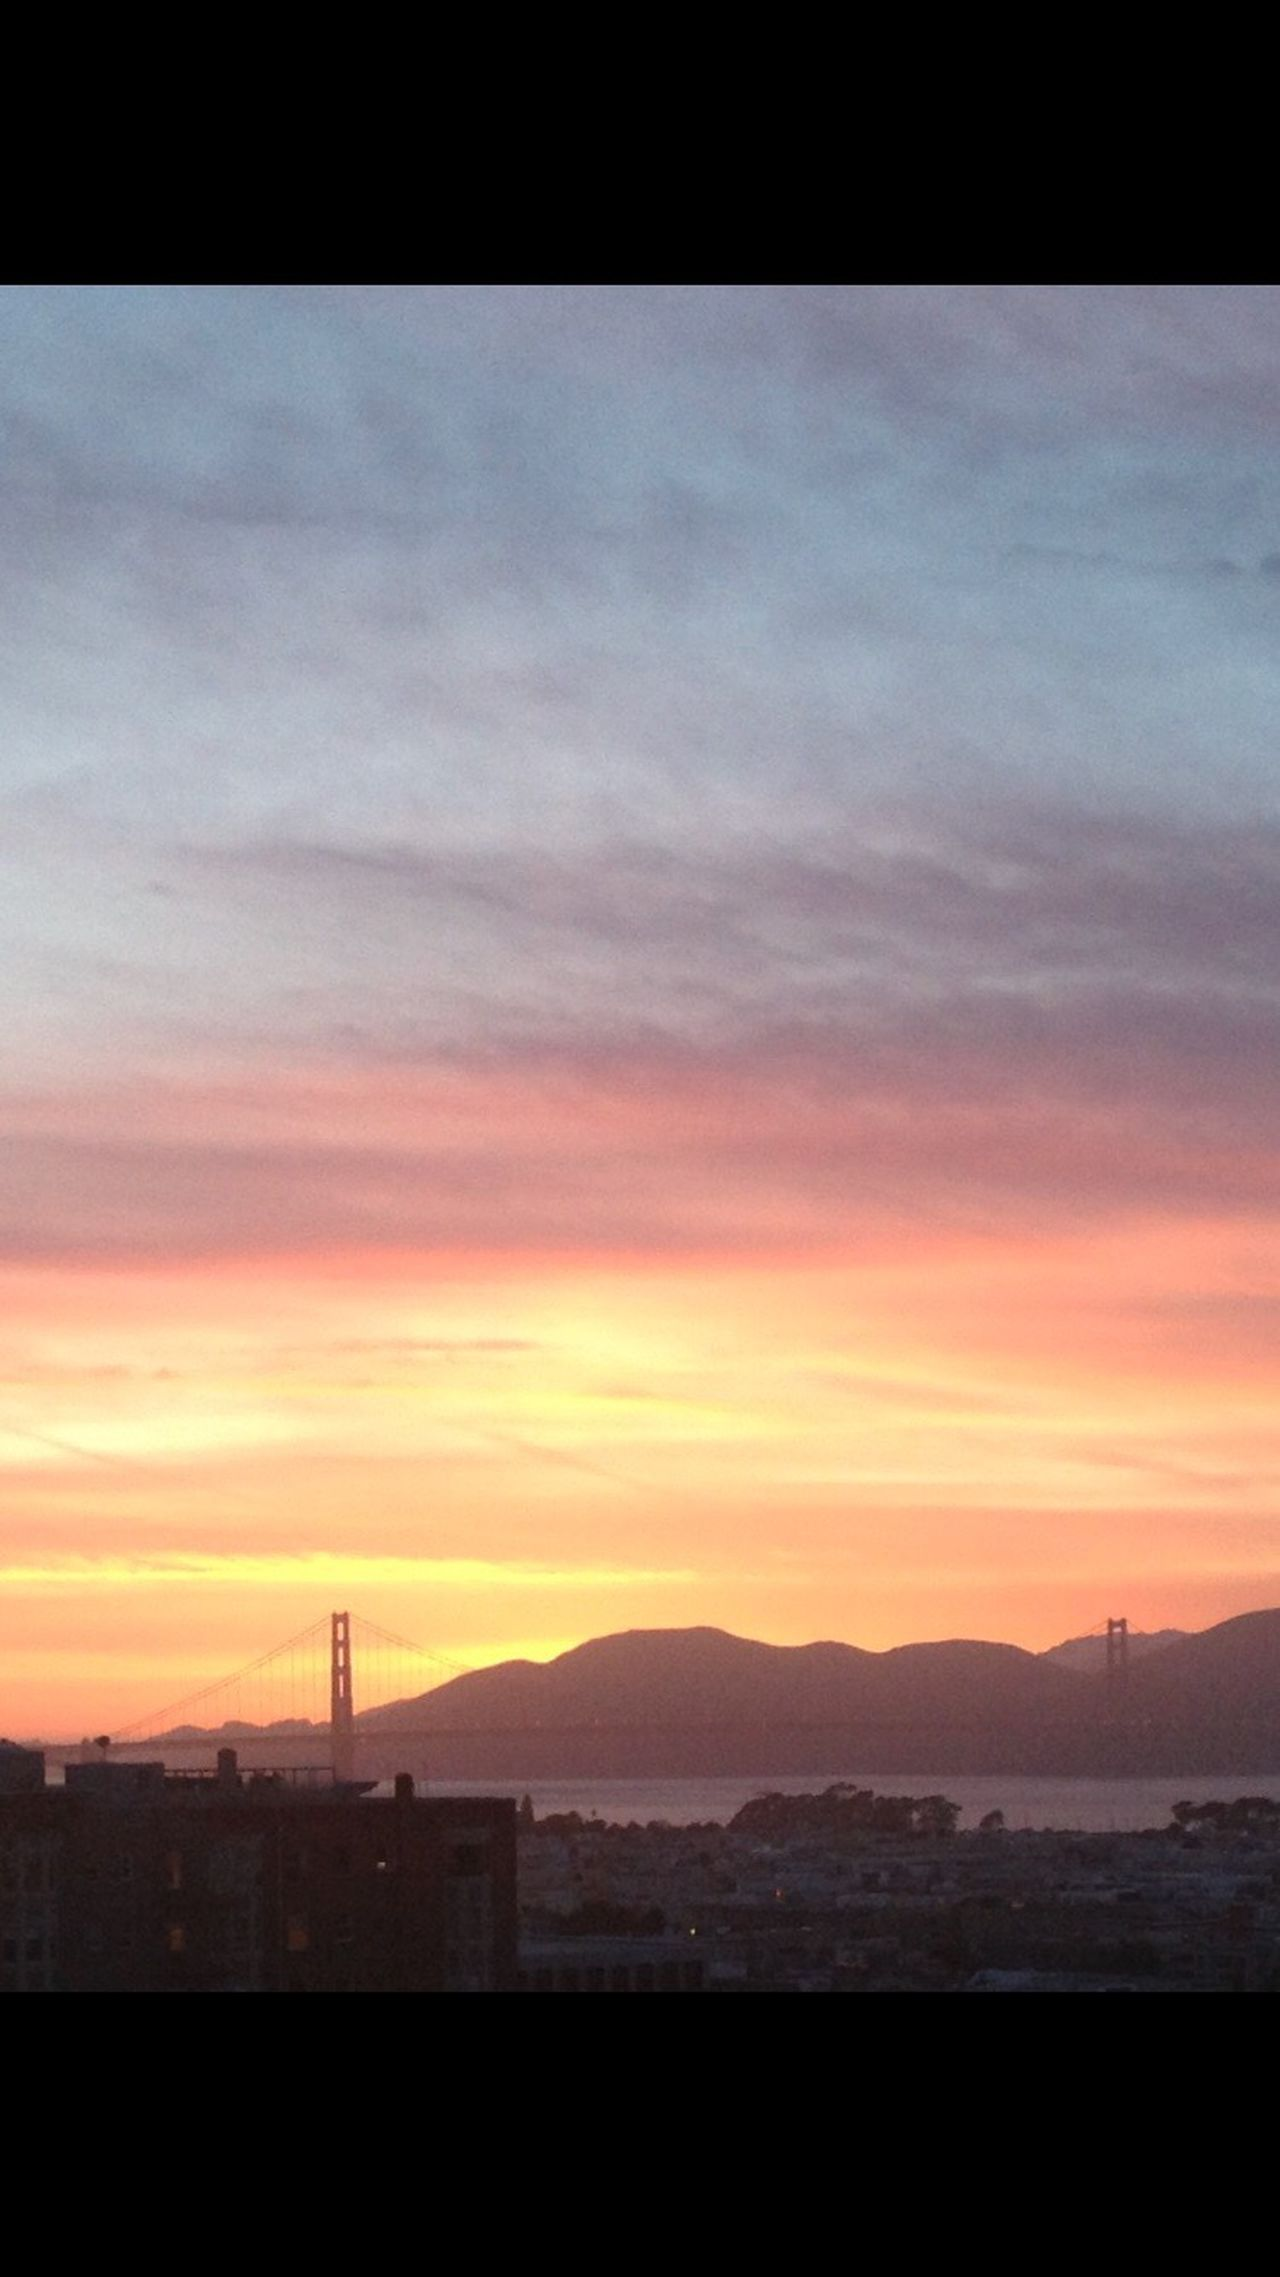 The City Light Golden Gate Bridge Sunset Sky Built Structure Silhouette Cloud - Sky No People Building Exterior Architecture Nature Beauty In Nature Outdoors Scenics Day San Francisco EyeEmNewHere